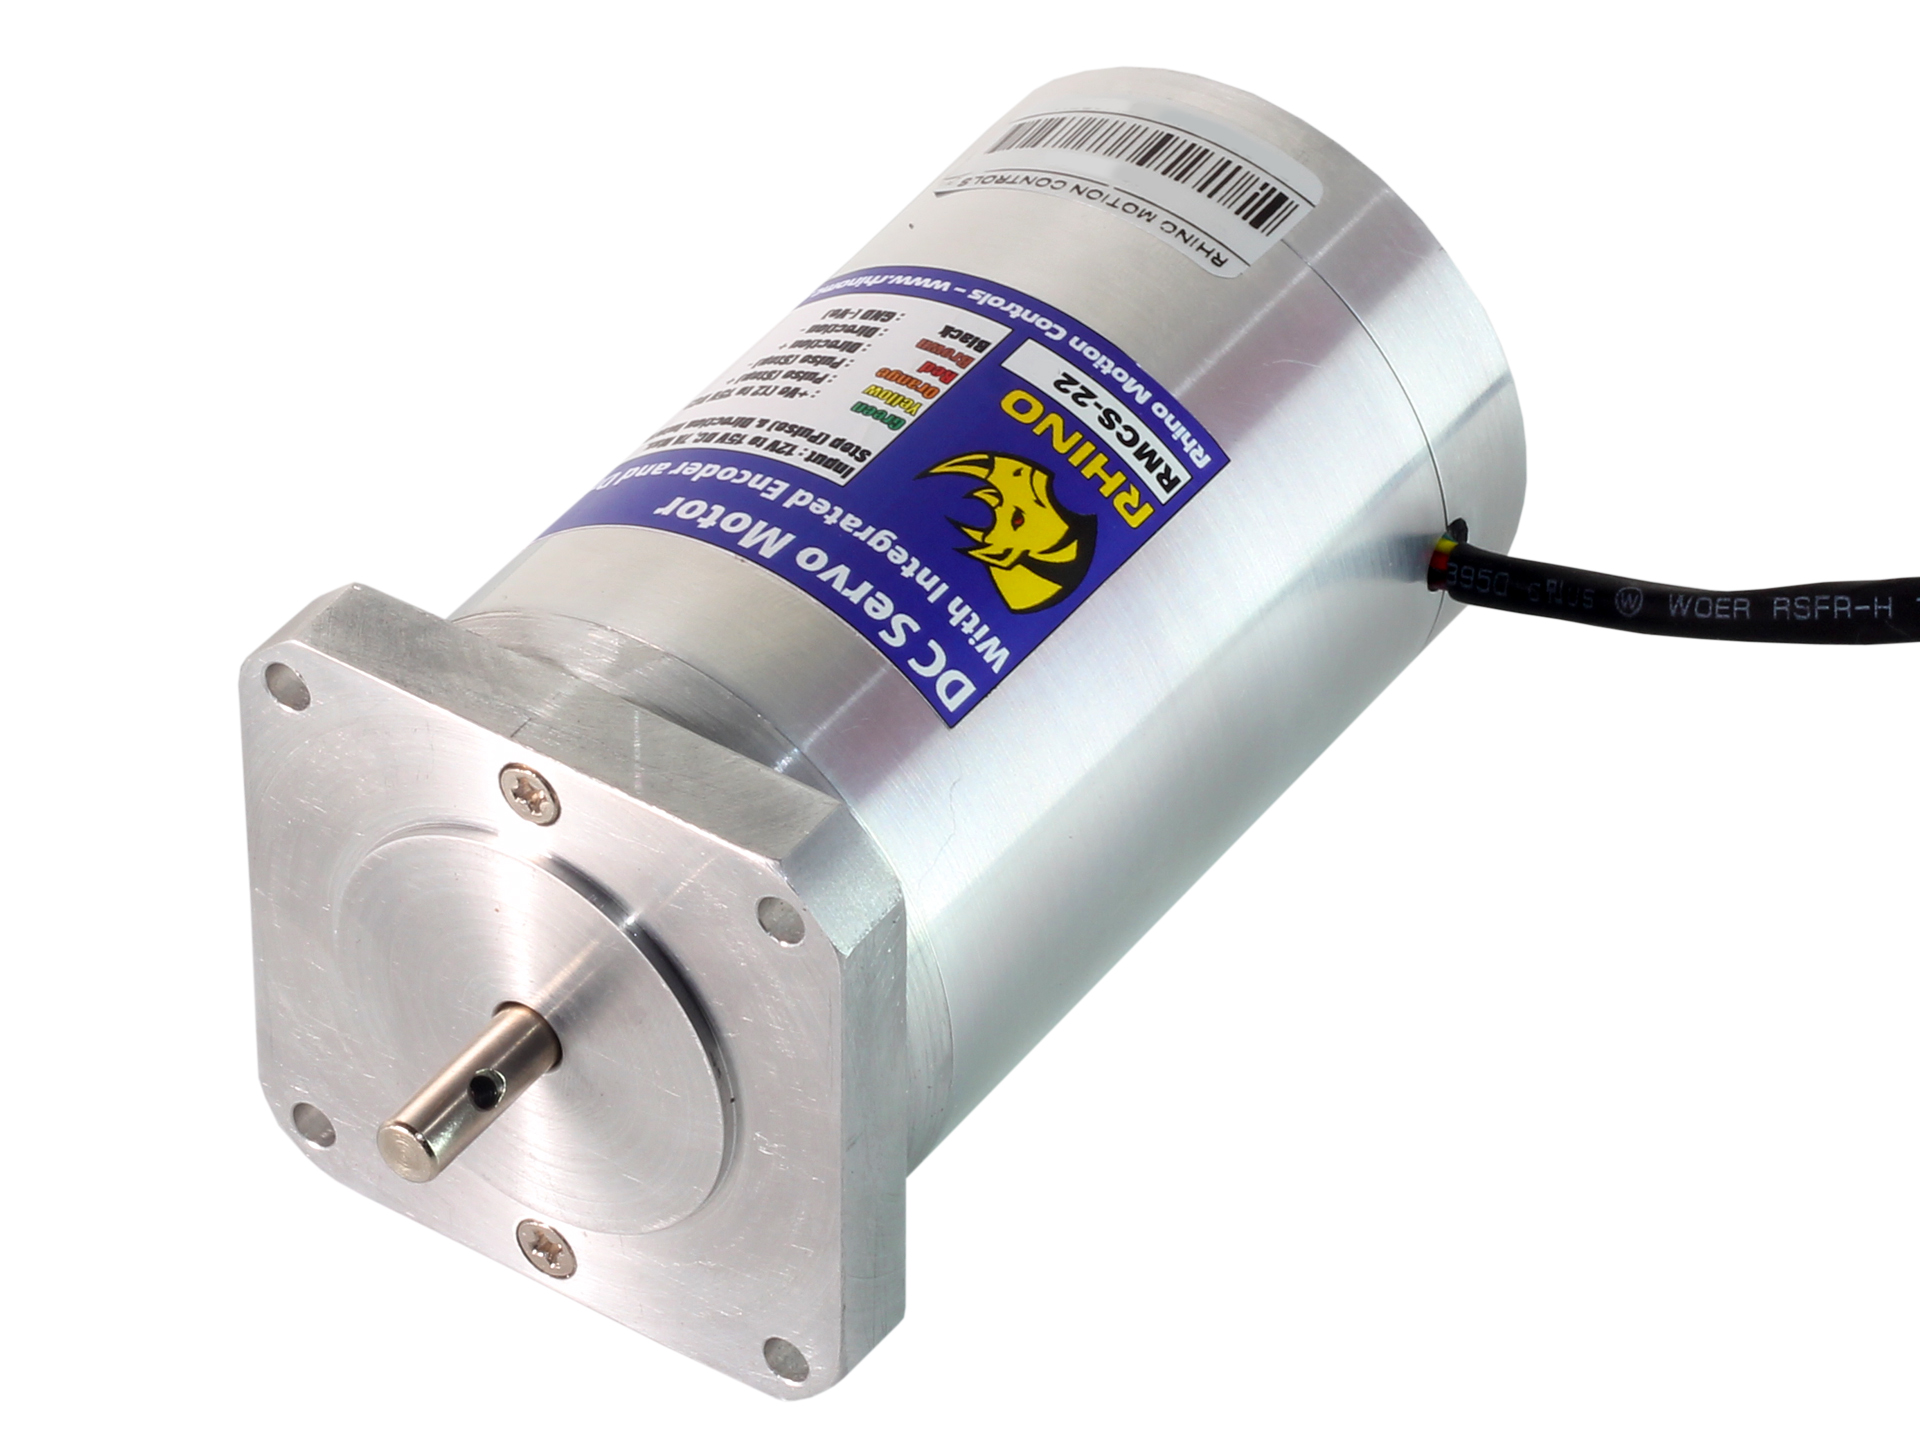 High torque encoder dc servo motor 600rpm w uart i2c ppm for High speed servo motor